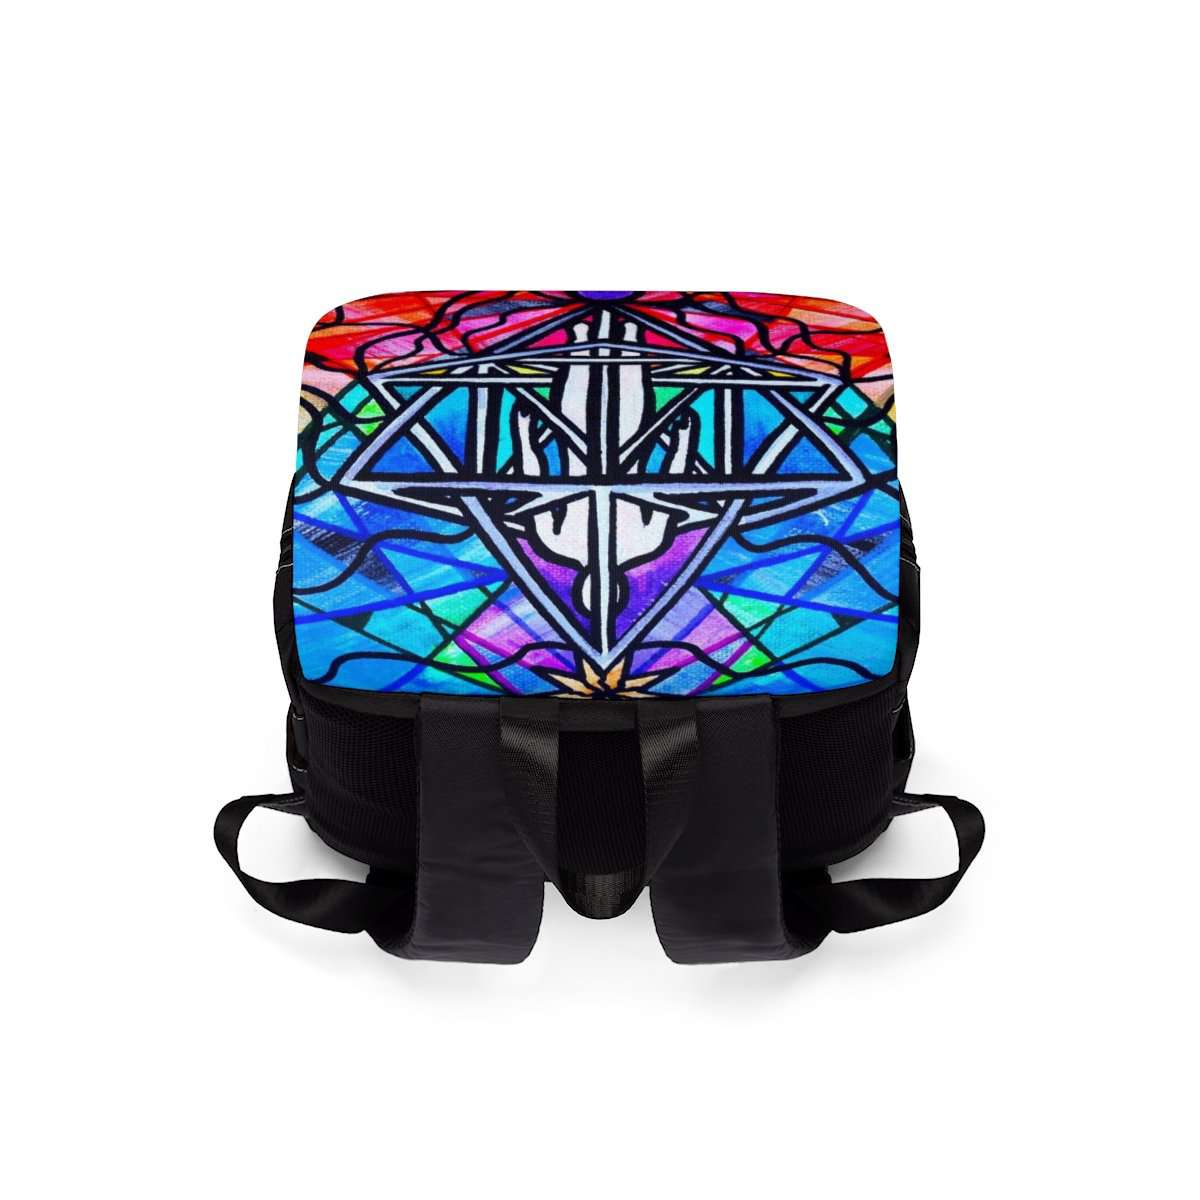 Merkabah - Unisex Casual Shoulder Backpack